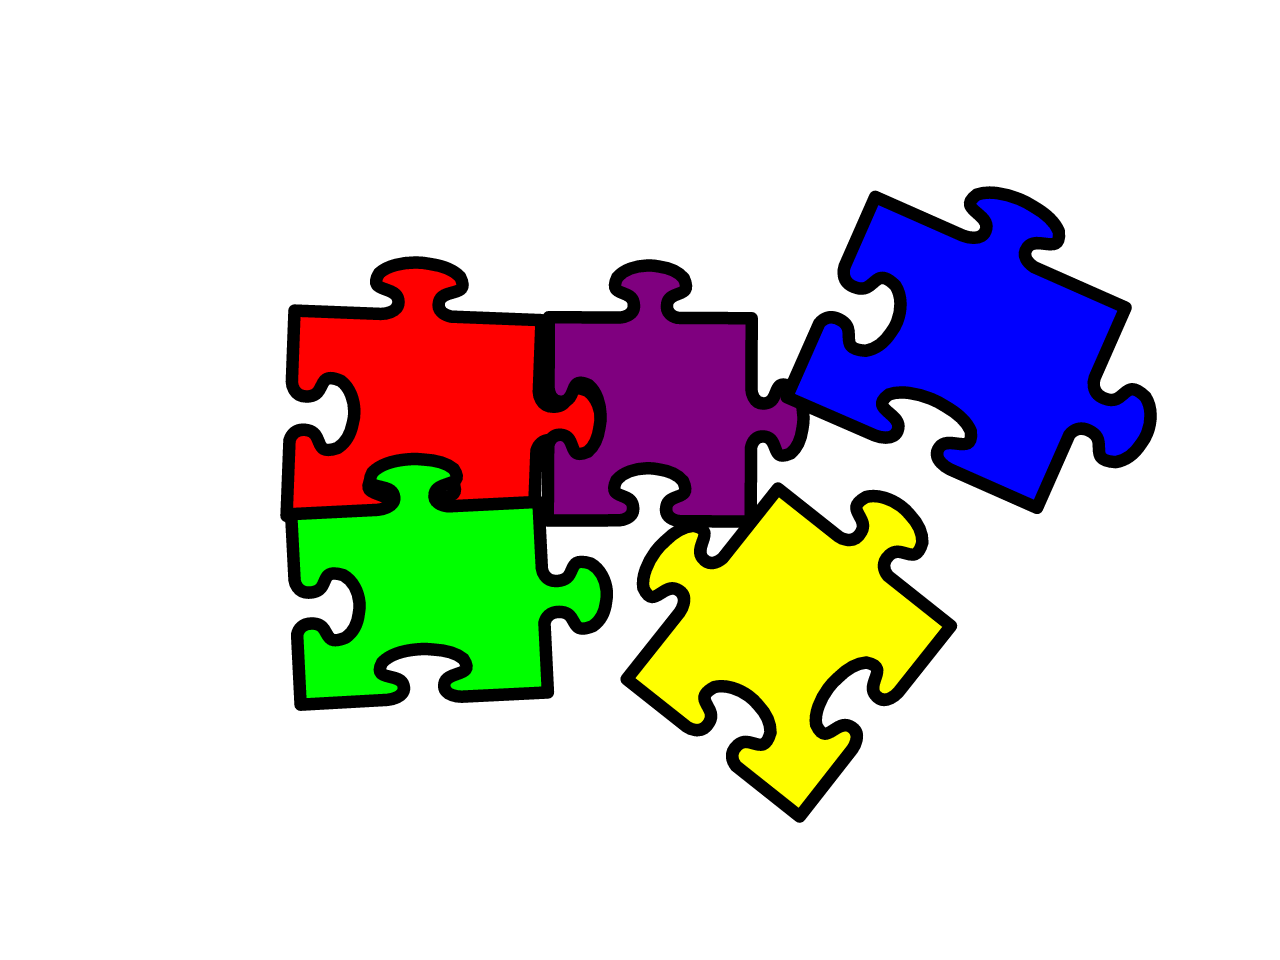 png royalty free download Puzzles clipart. Jigsaw clip art autism.